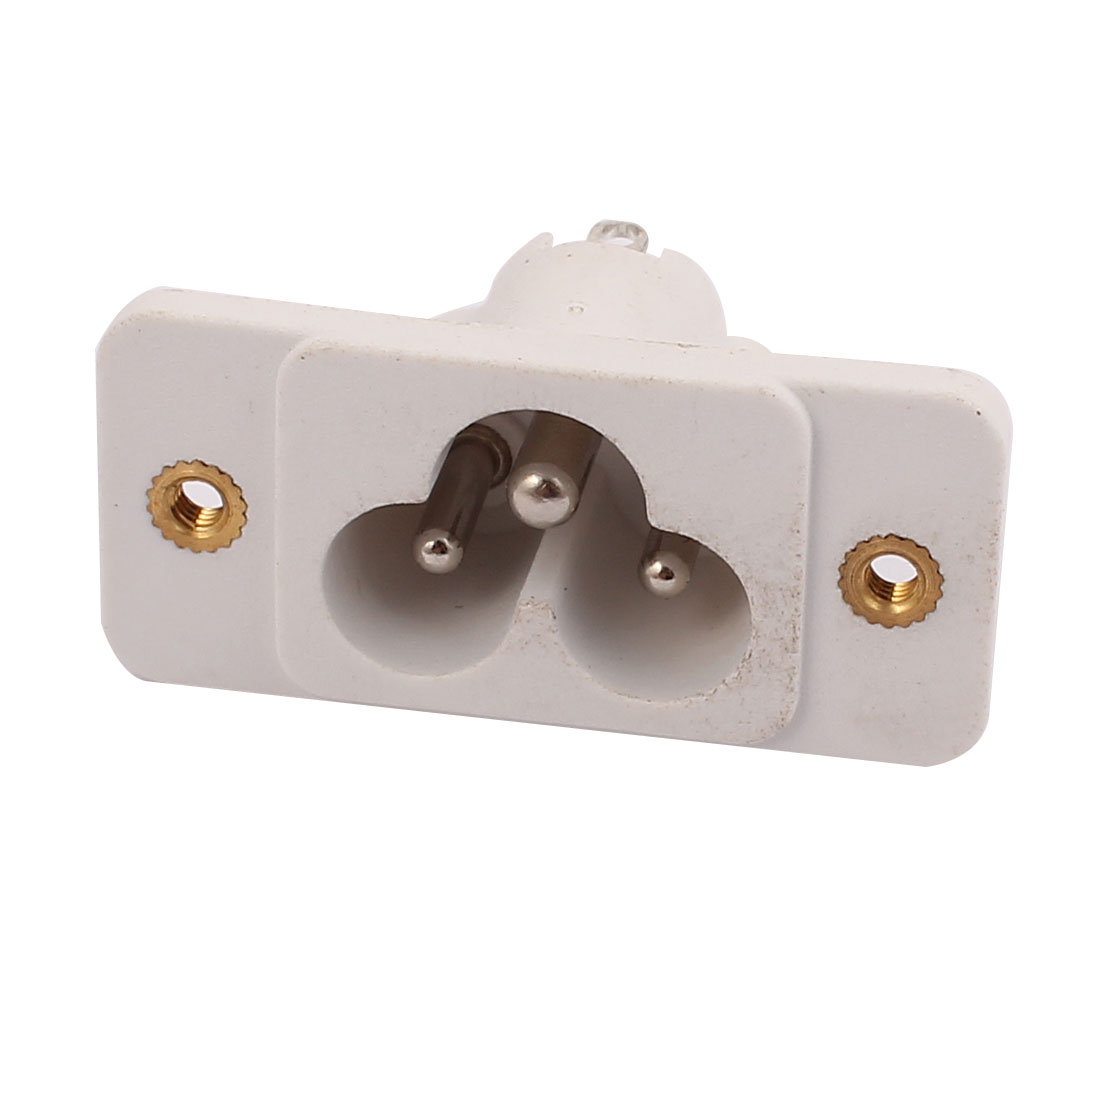 AC250V 2.5A/5A DB-14-S-3T IEC AC Input Wiring Socket Copper Rhodium Power White